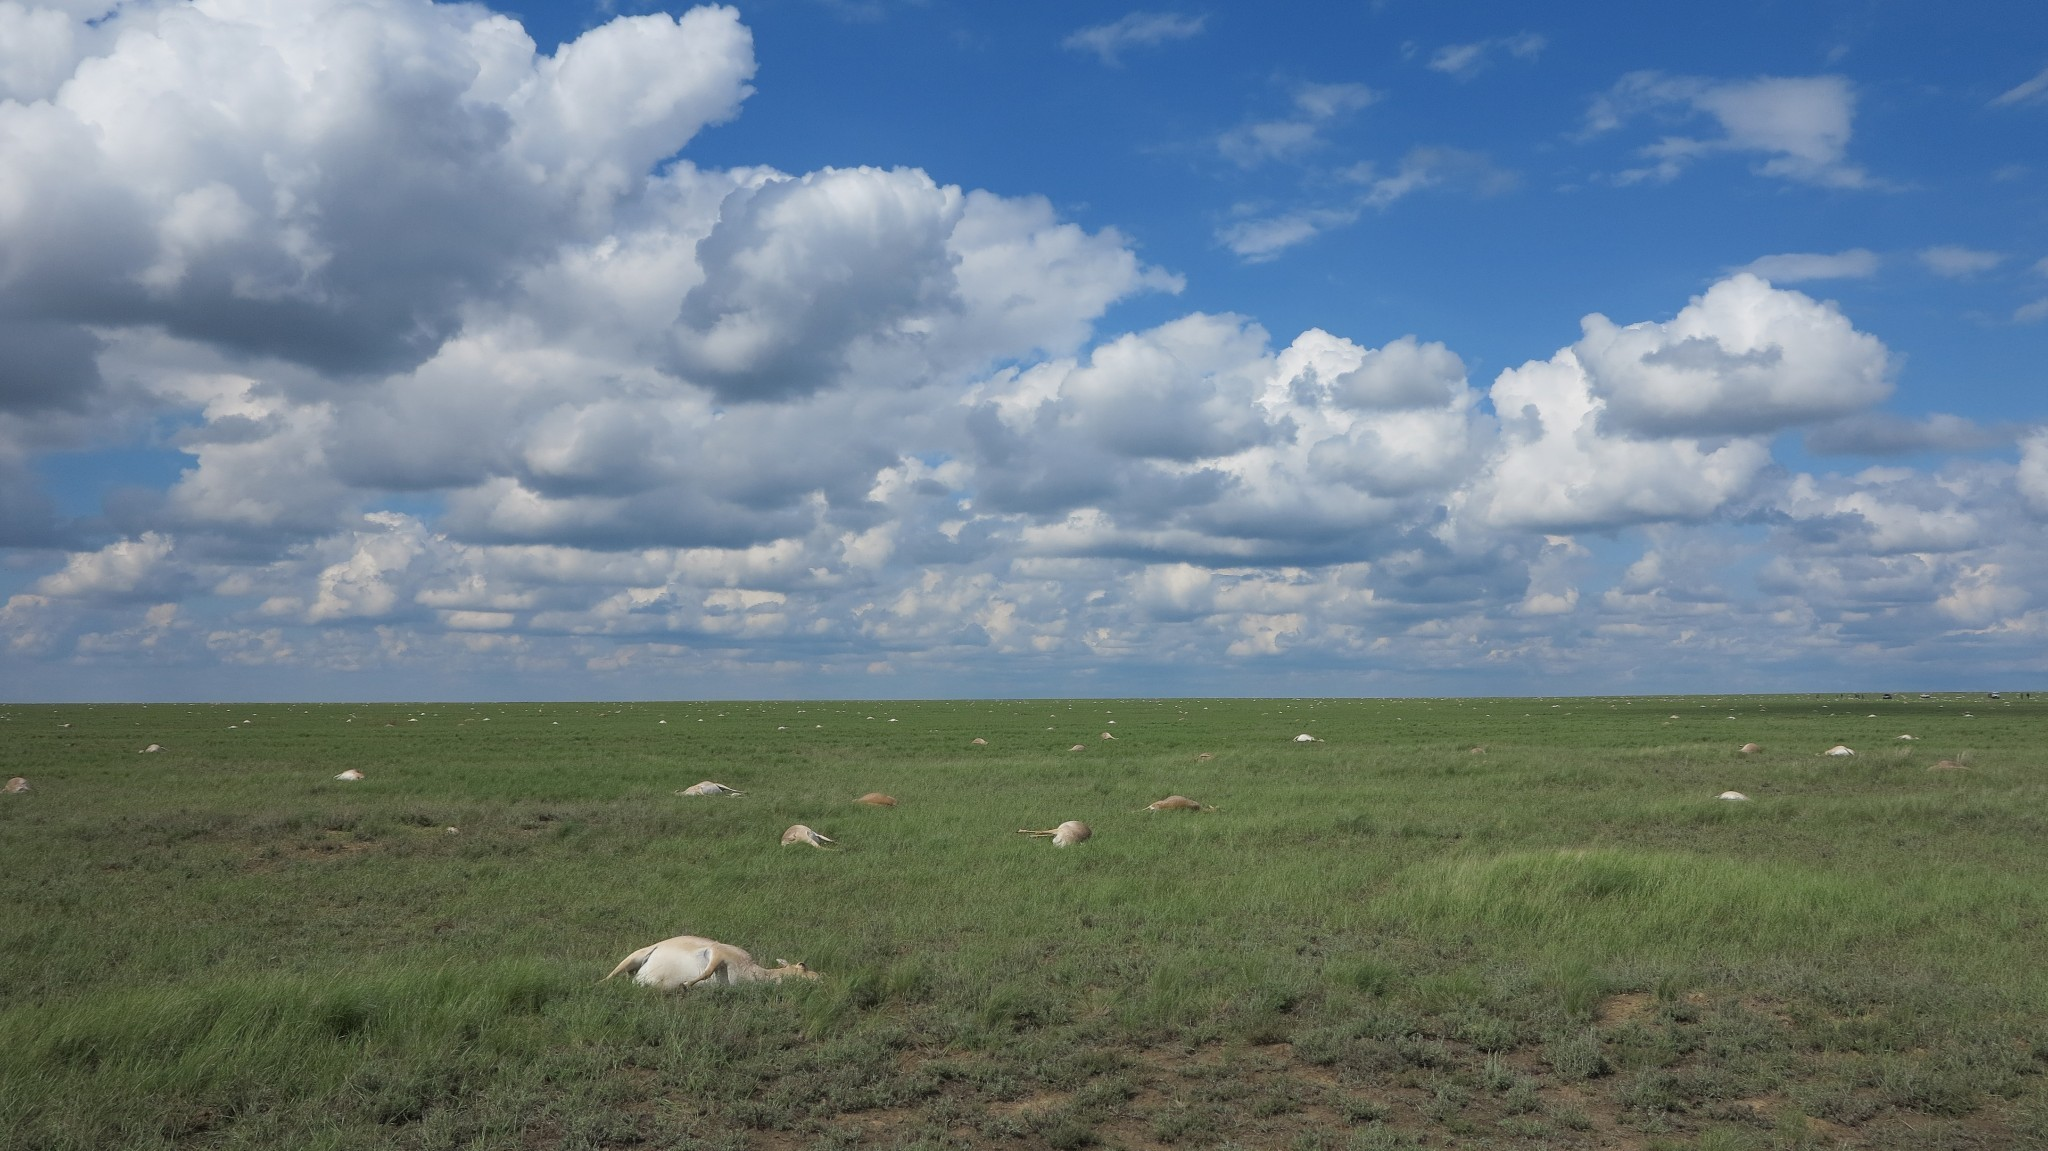 Strange Weather Triggered Bacteria That Killed 200,000 Endangered Antelope